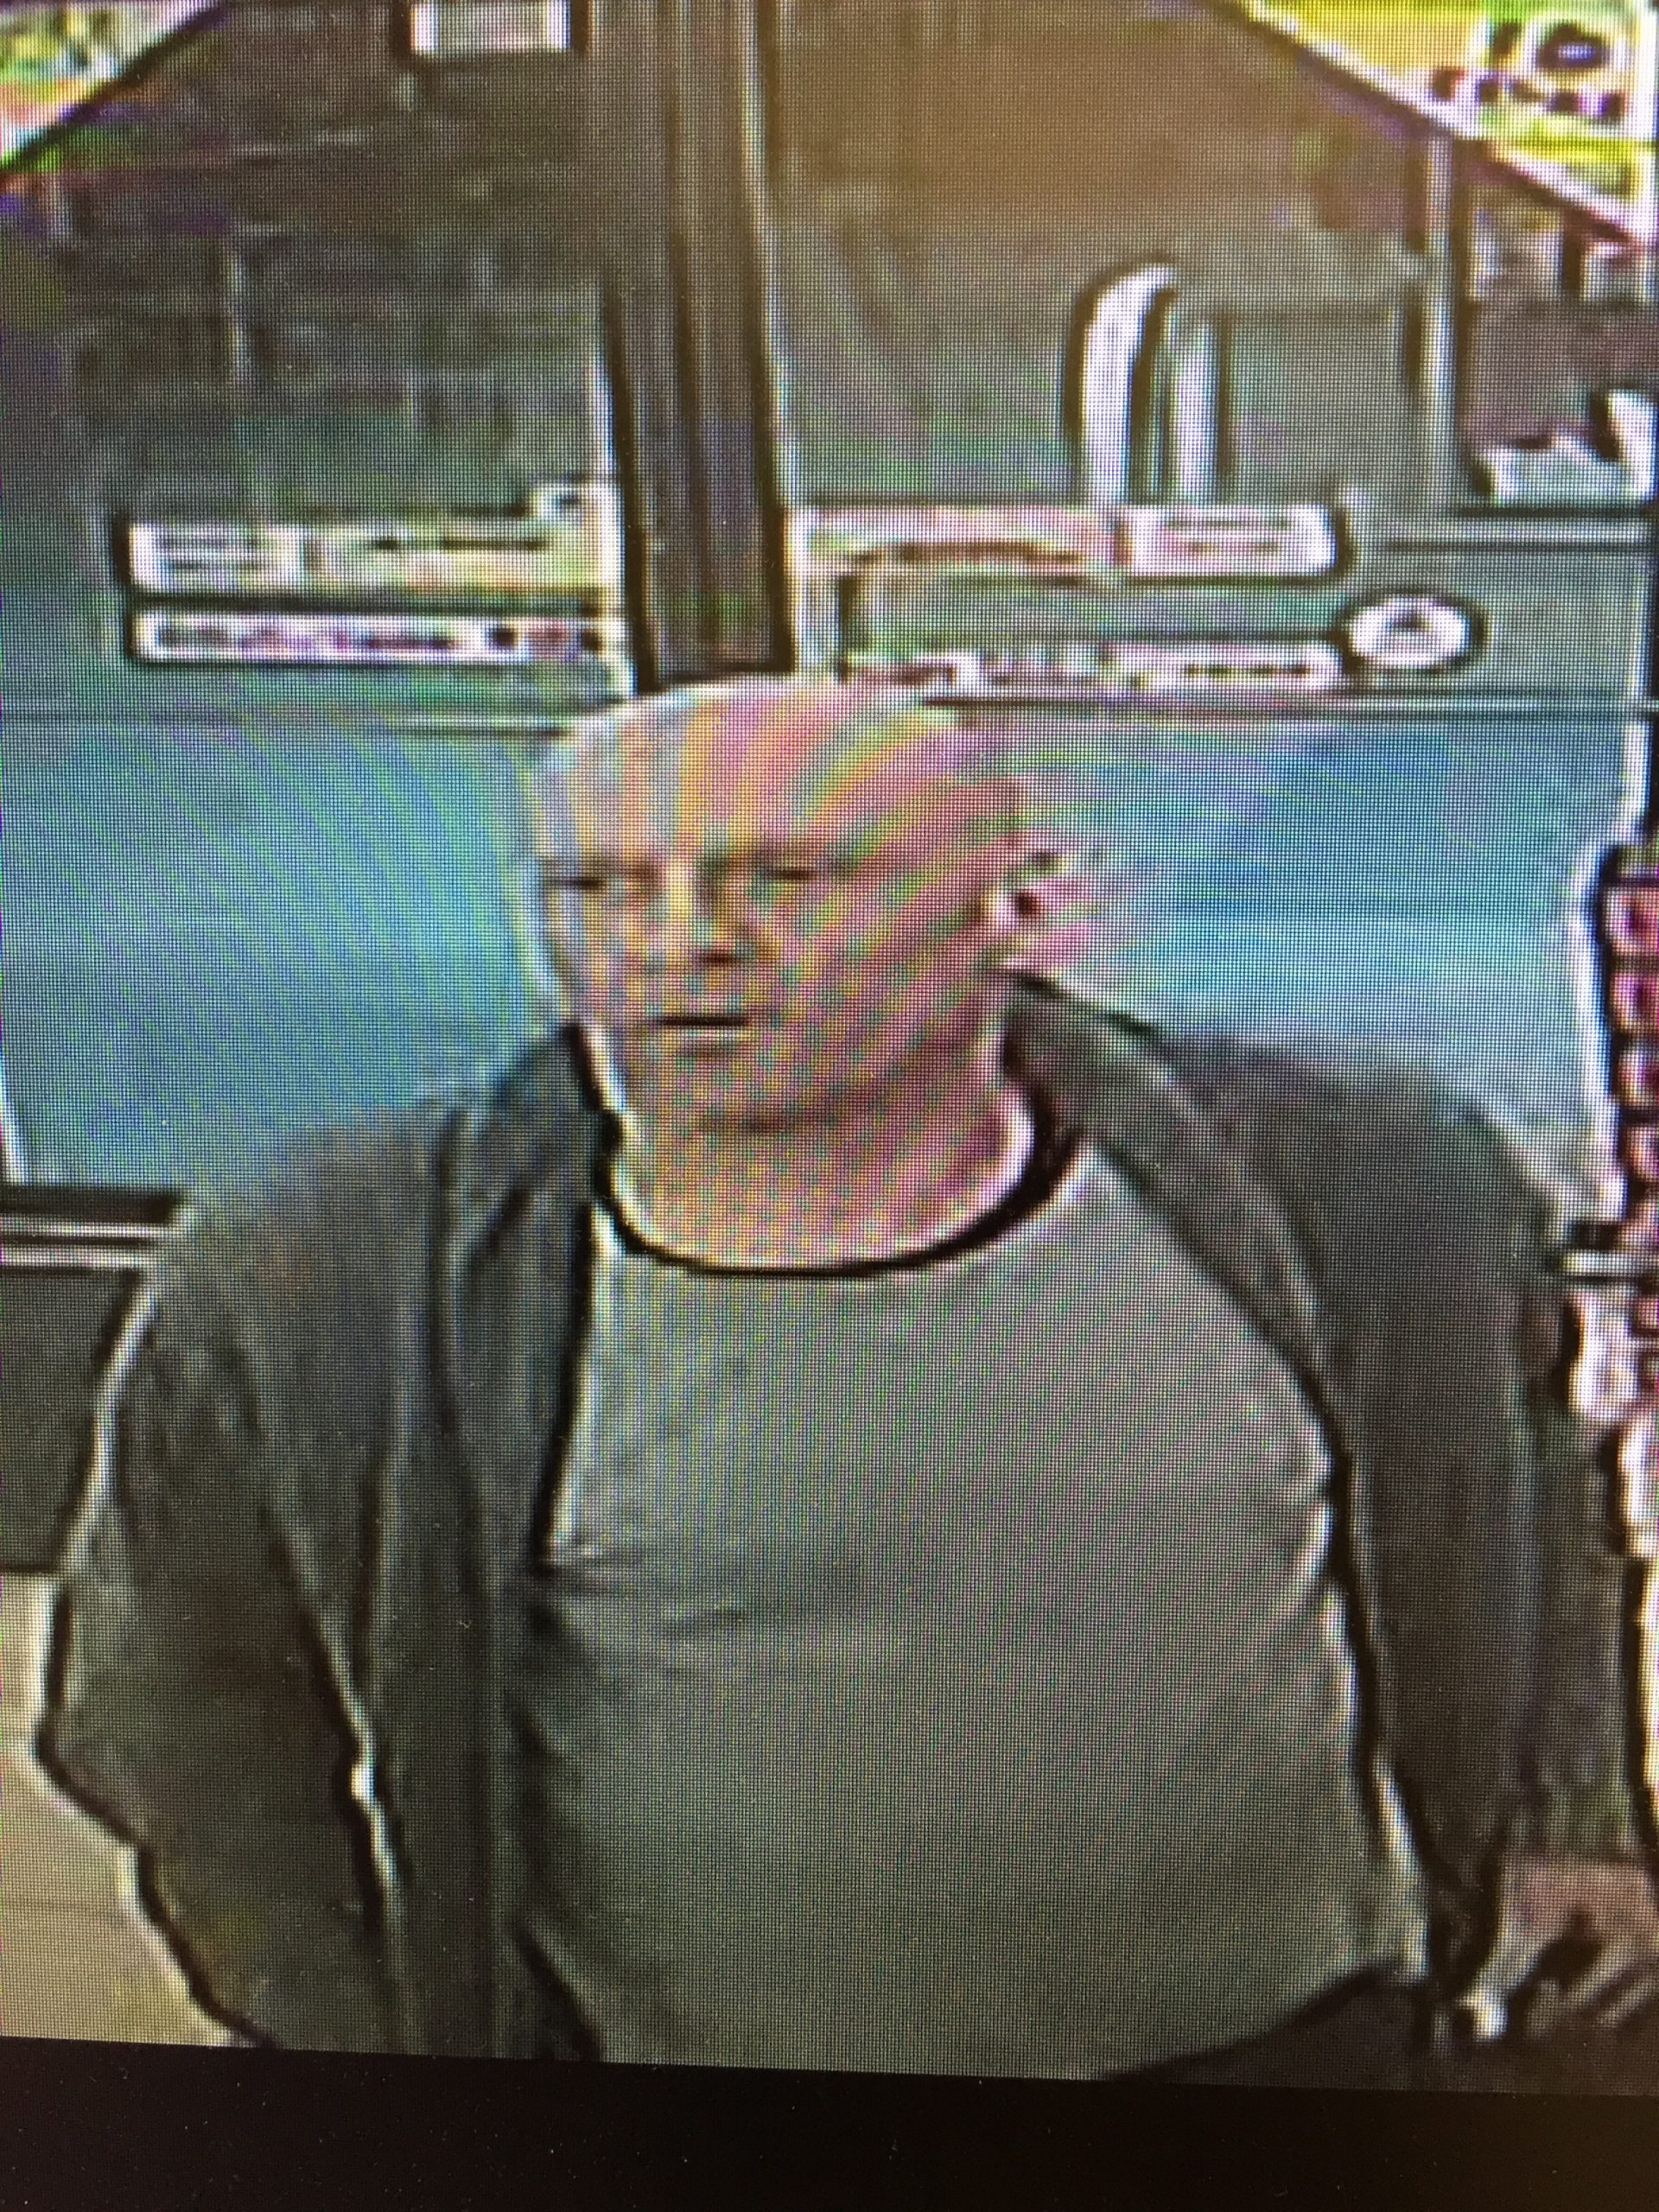 RCMP investigating series of stolen vehicles, credit cards in Sparwood